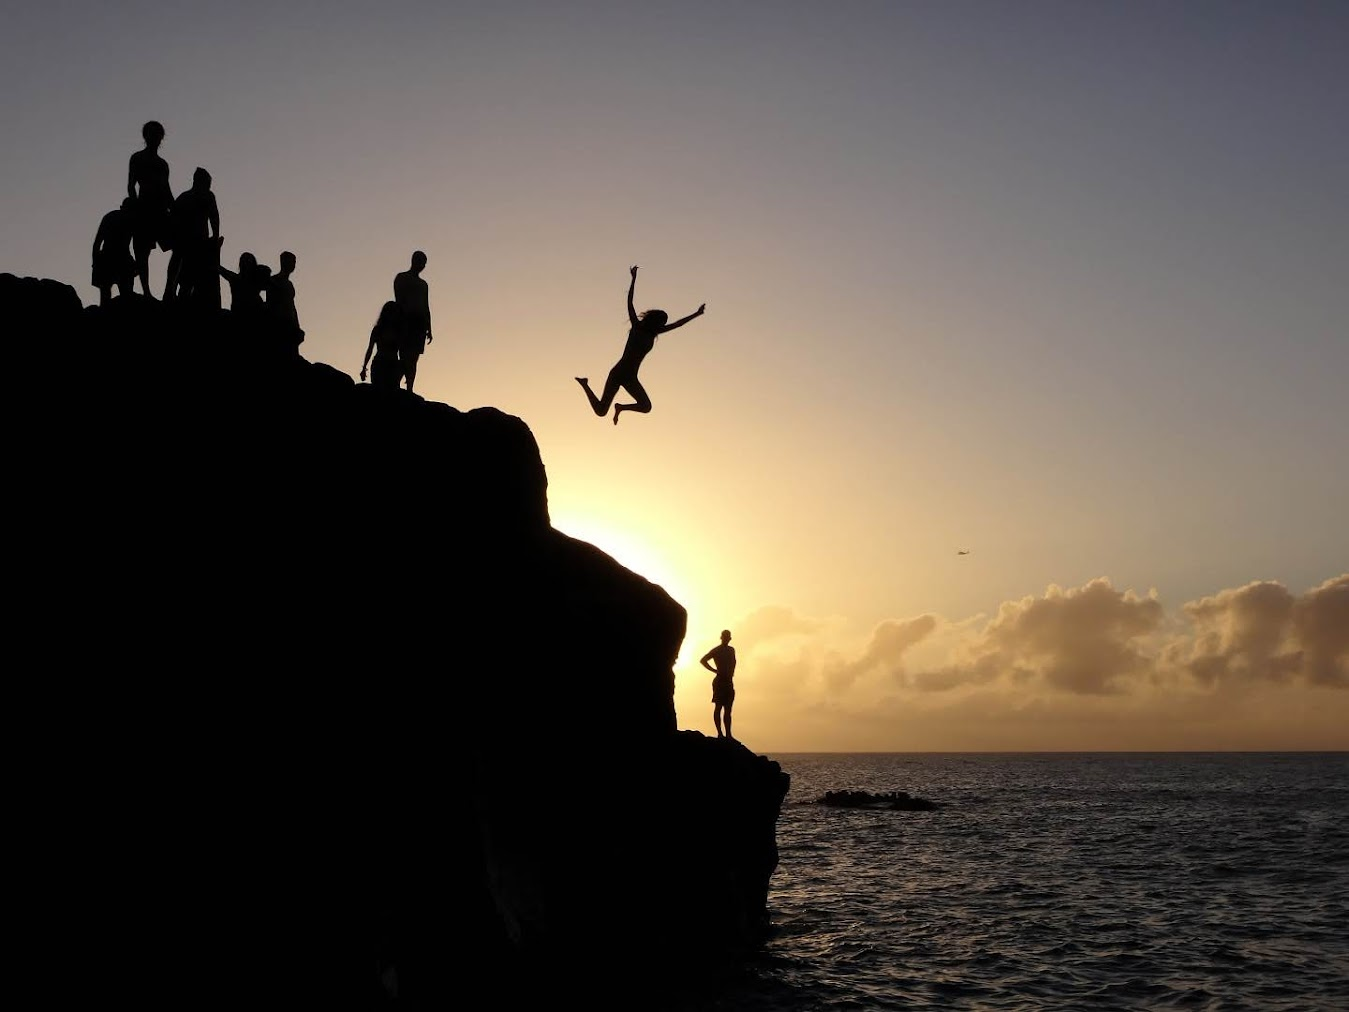 Cliff jumpers at Waimea Beach (Haleiwa, HI, USA)